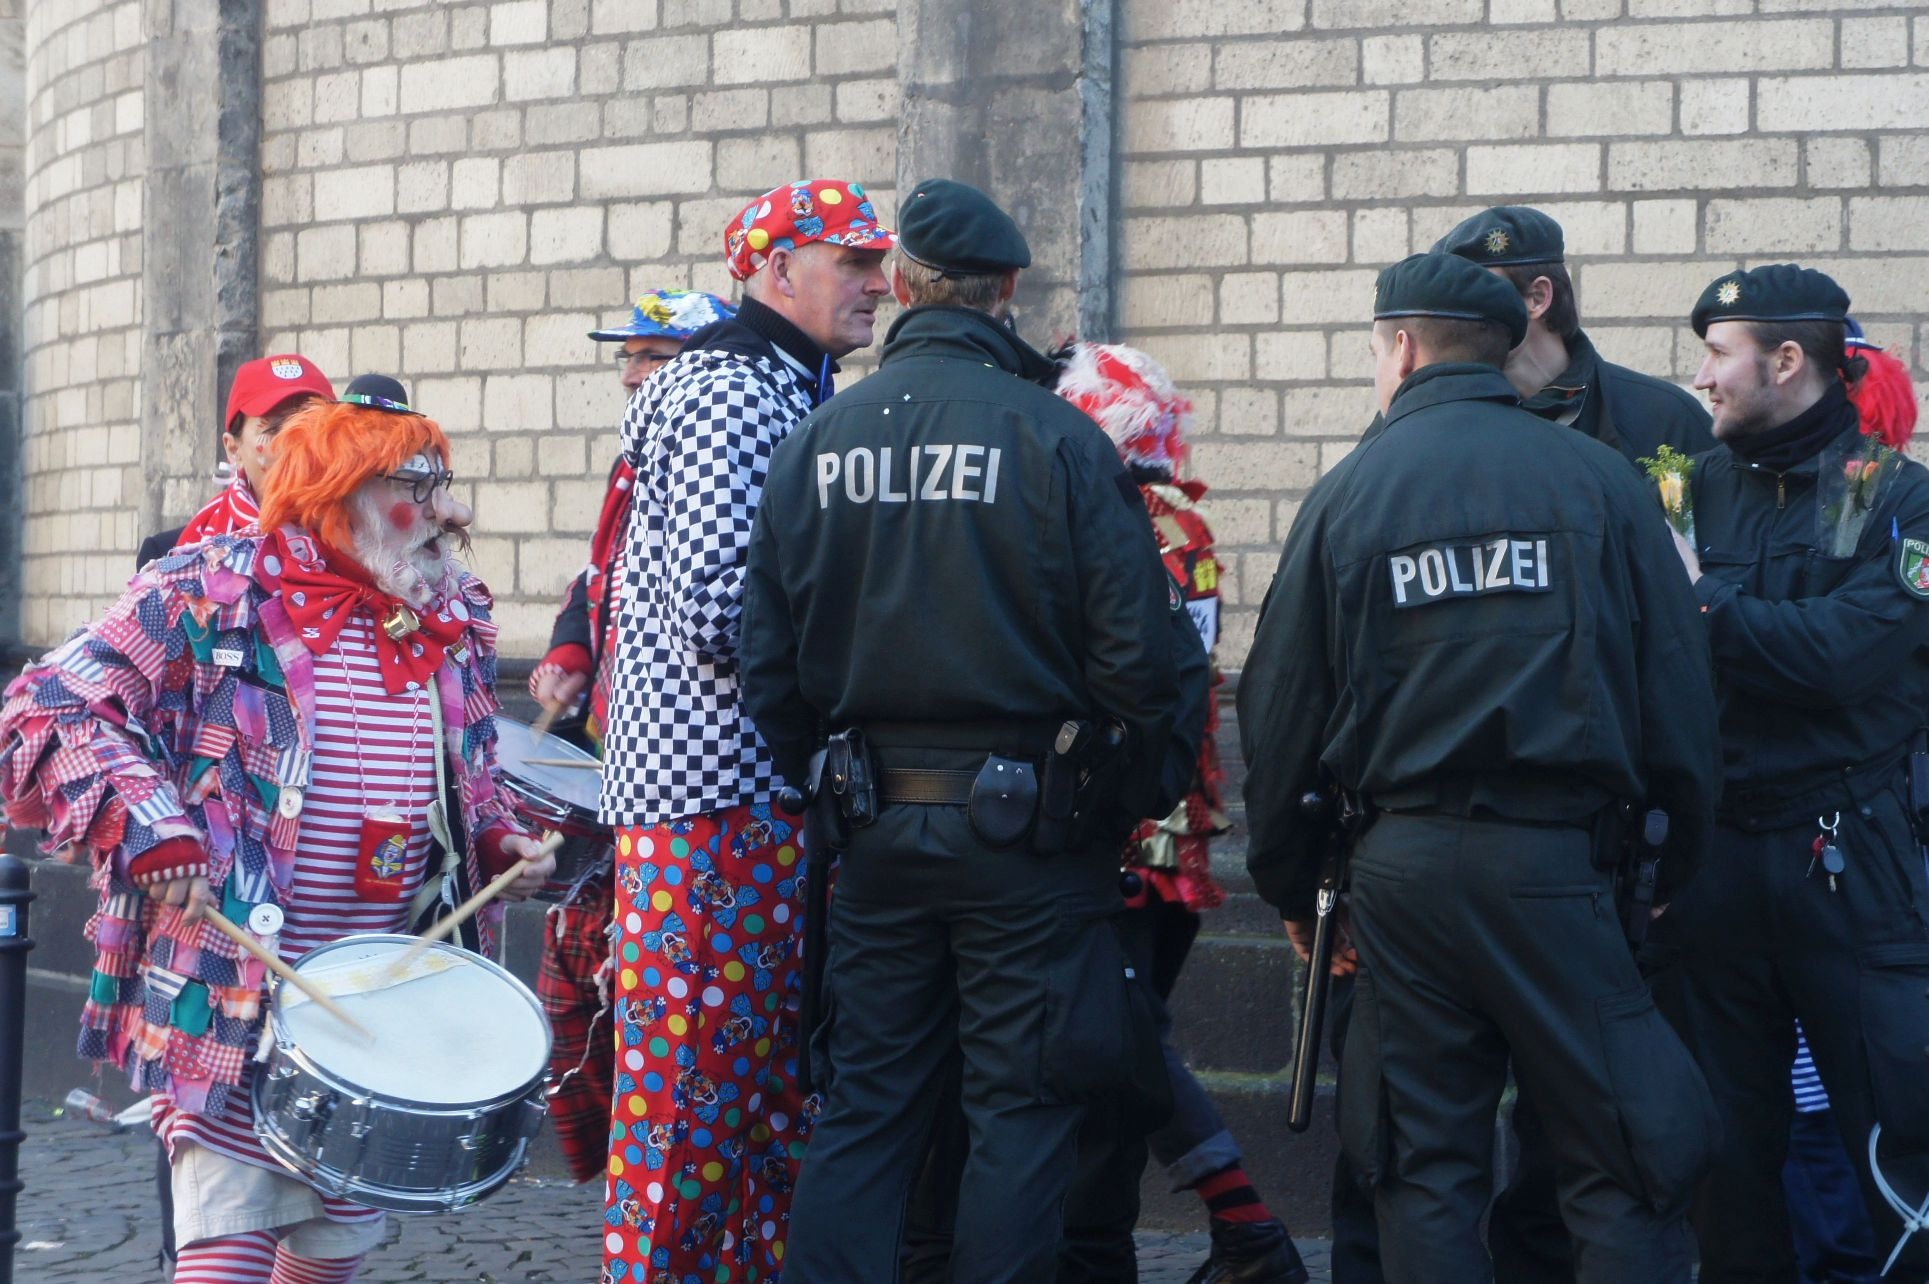 Making sure Die Polizei do not miss out on the fun.